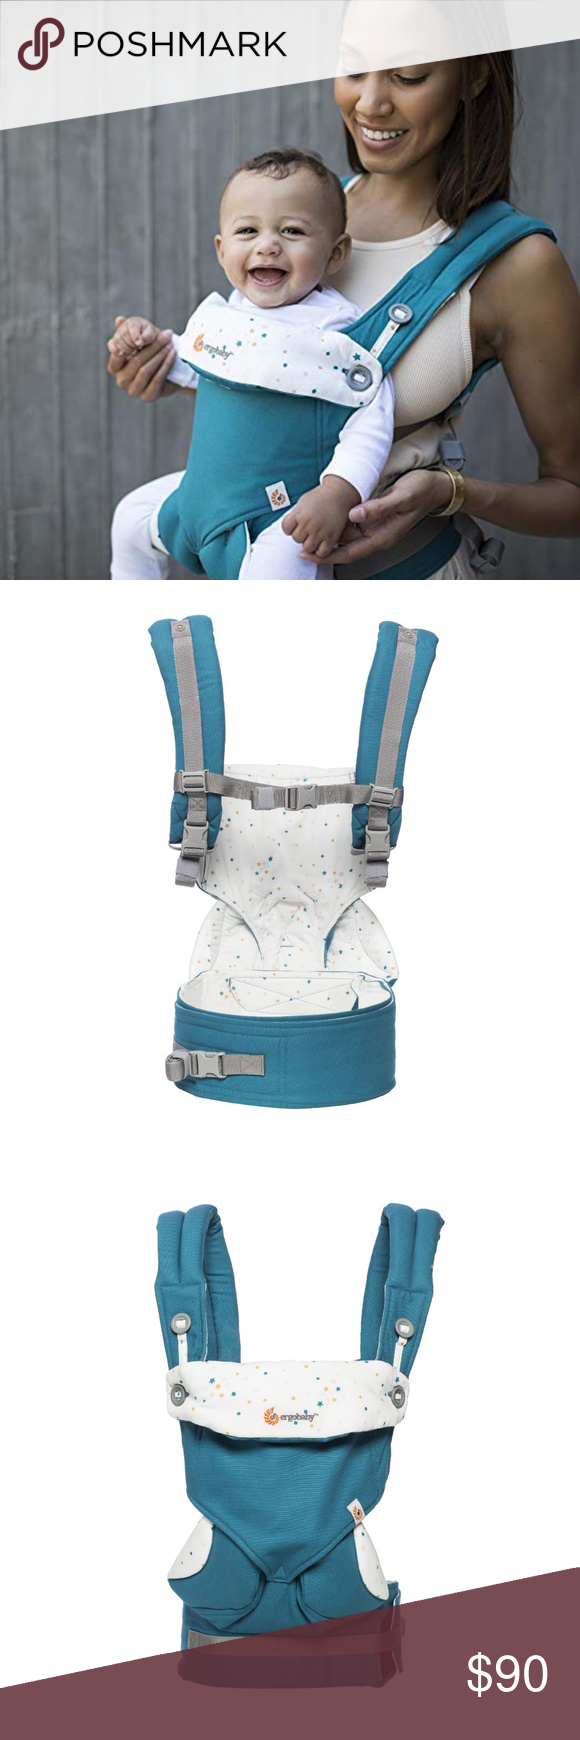 62fd7f36df4 Ergobaby 360 4 Position Baby Carrier New in box. Bundle with the infant  insert for